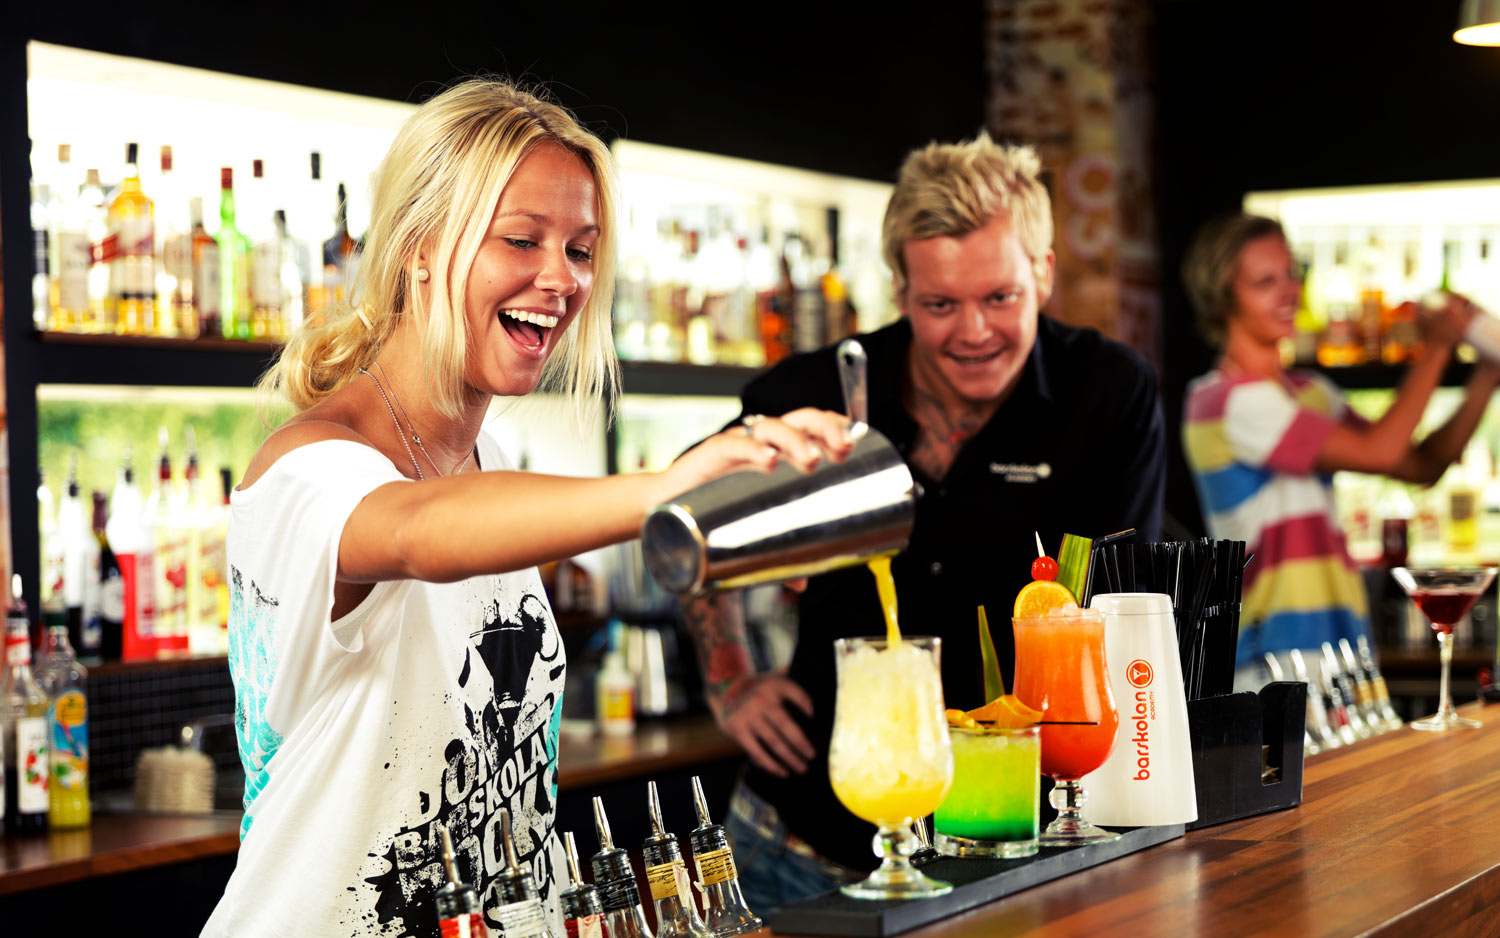 Confessions Of A Bartender: 10 Things Every Bartender